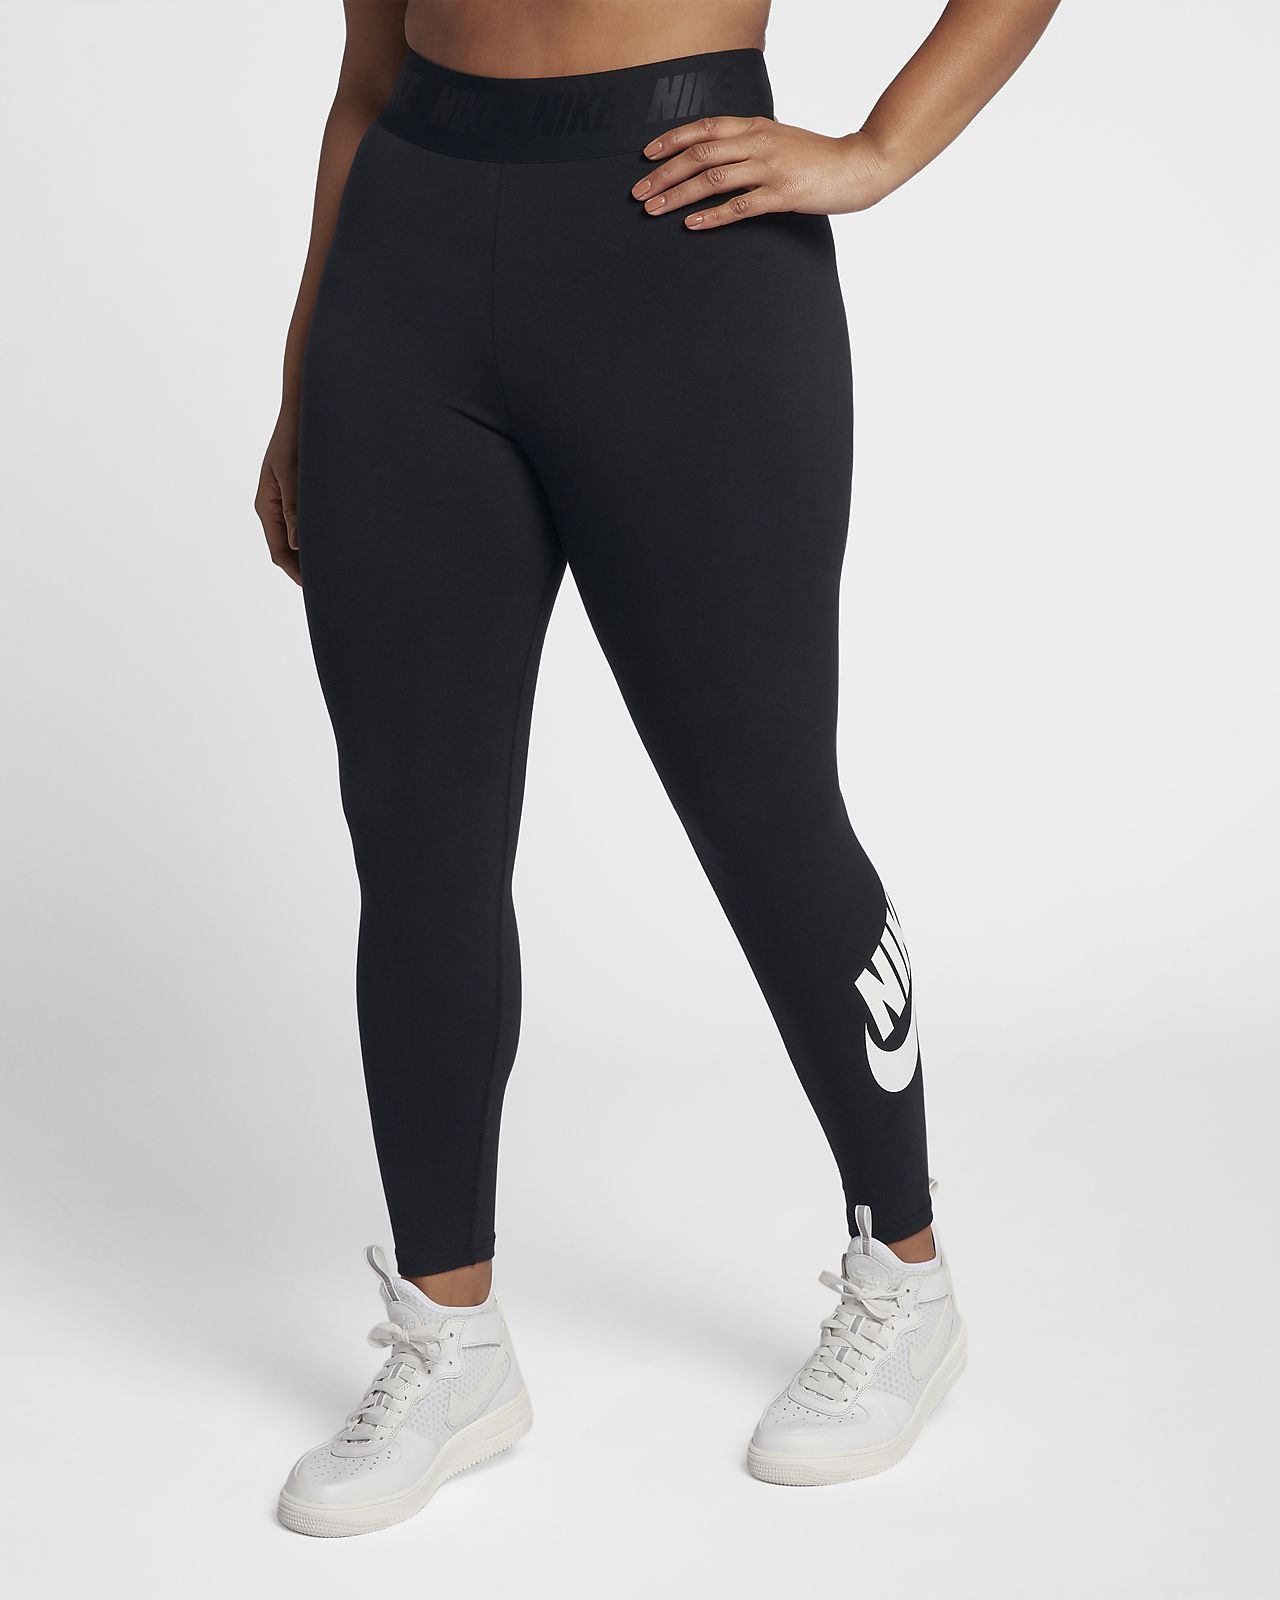 Pay With Visa For Sale Sale Best Place Plus Leg-A-See High Waisted Leggings In Black - Black Nike n8WZW